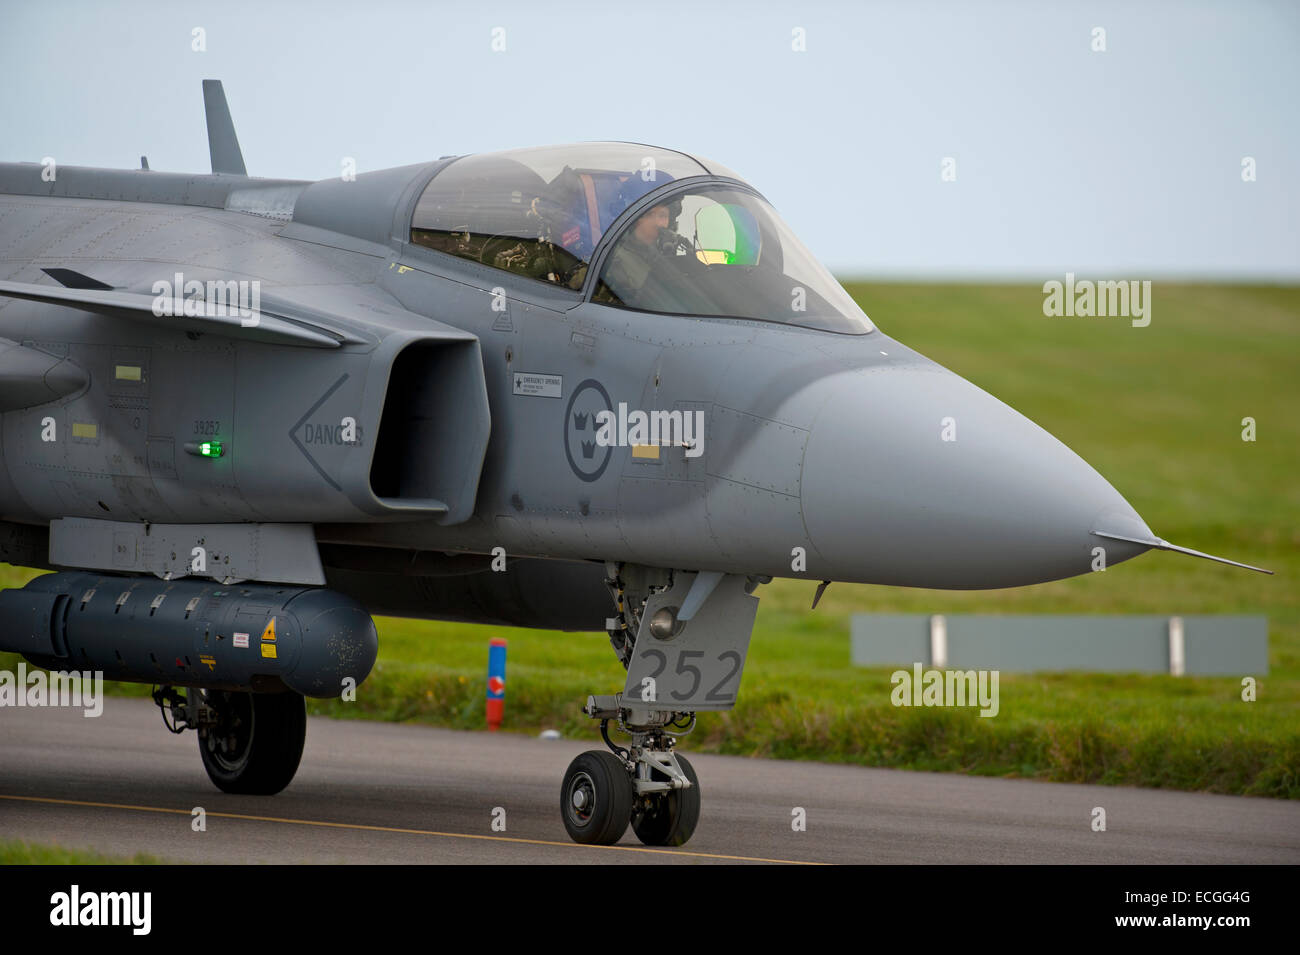 Swedish Gripen Tail Fin Serial Registration No 252 Taxiing on 05 at RAF Lossiemouth.  SCO 9314. - Stock Image